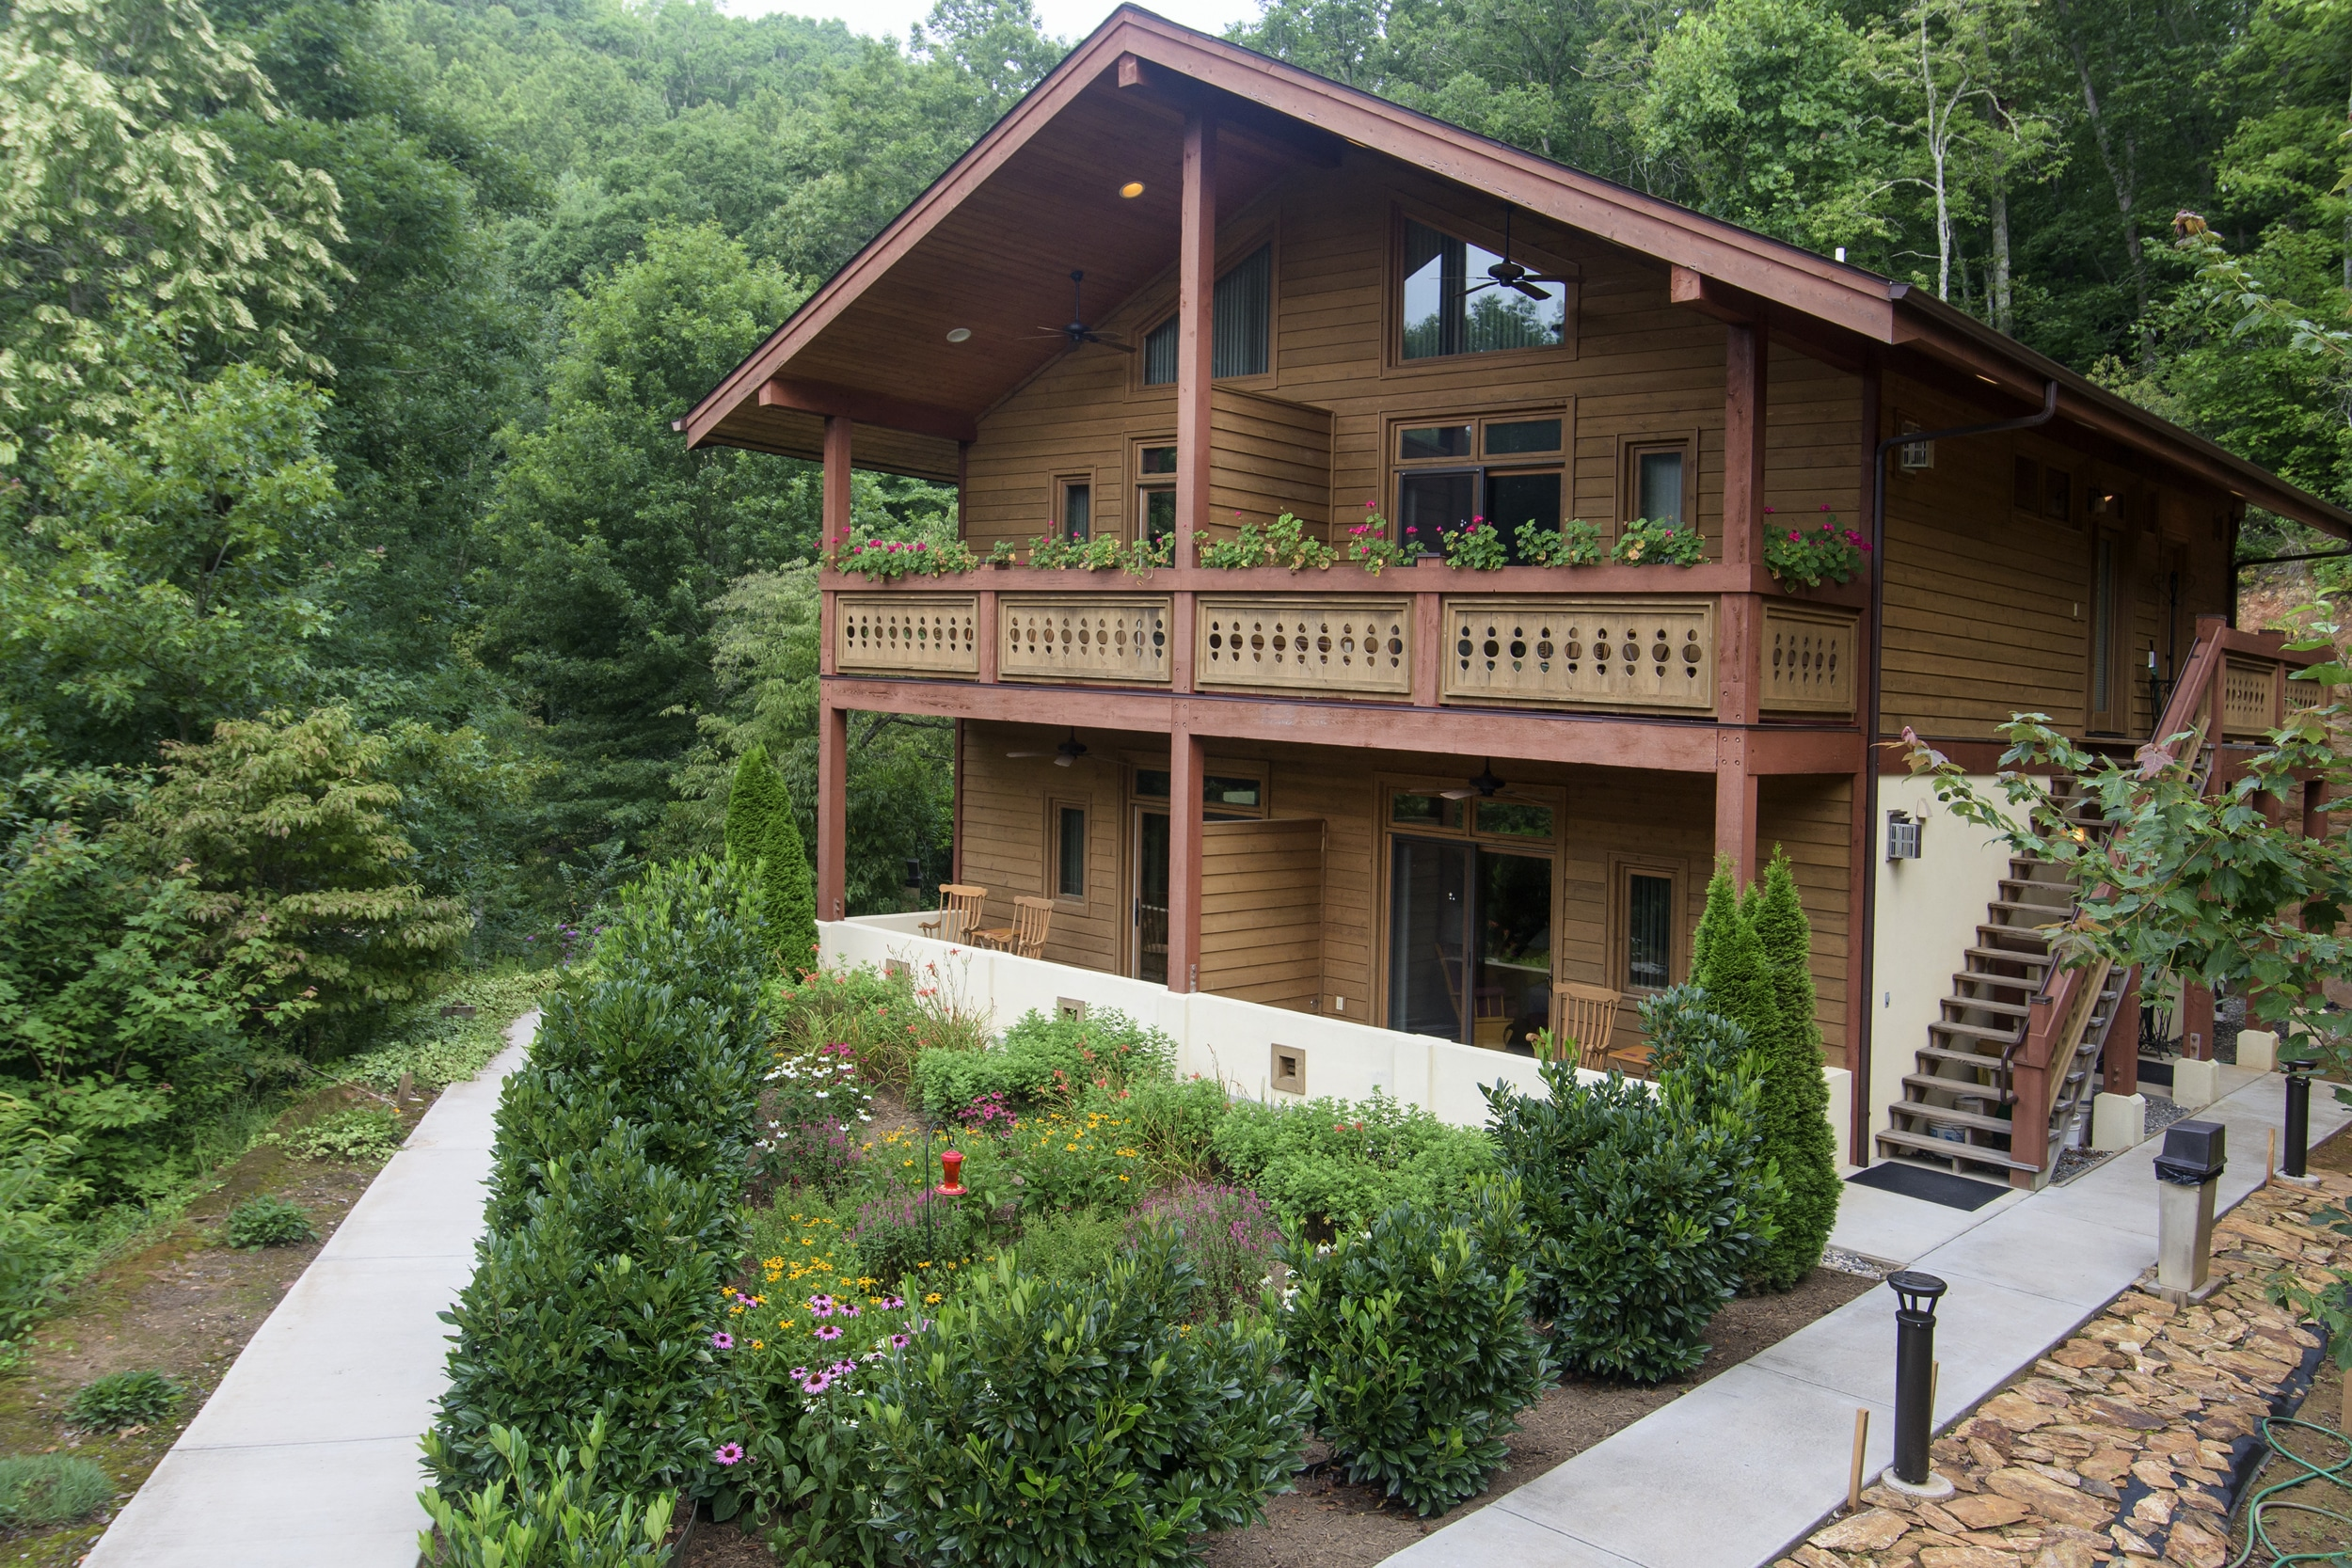 Photo of Chalet Suites Boutique Hotel